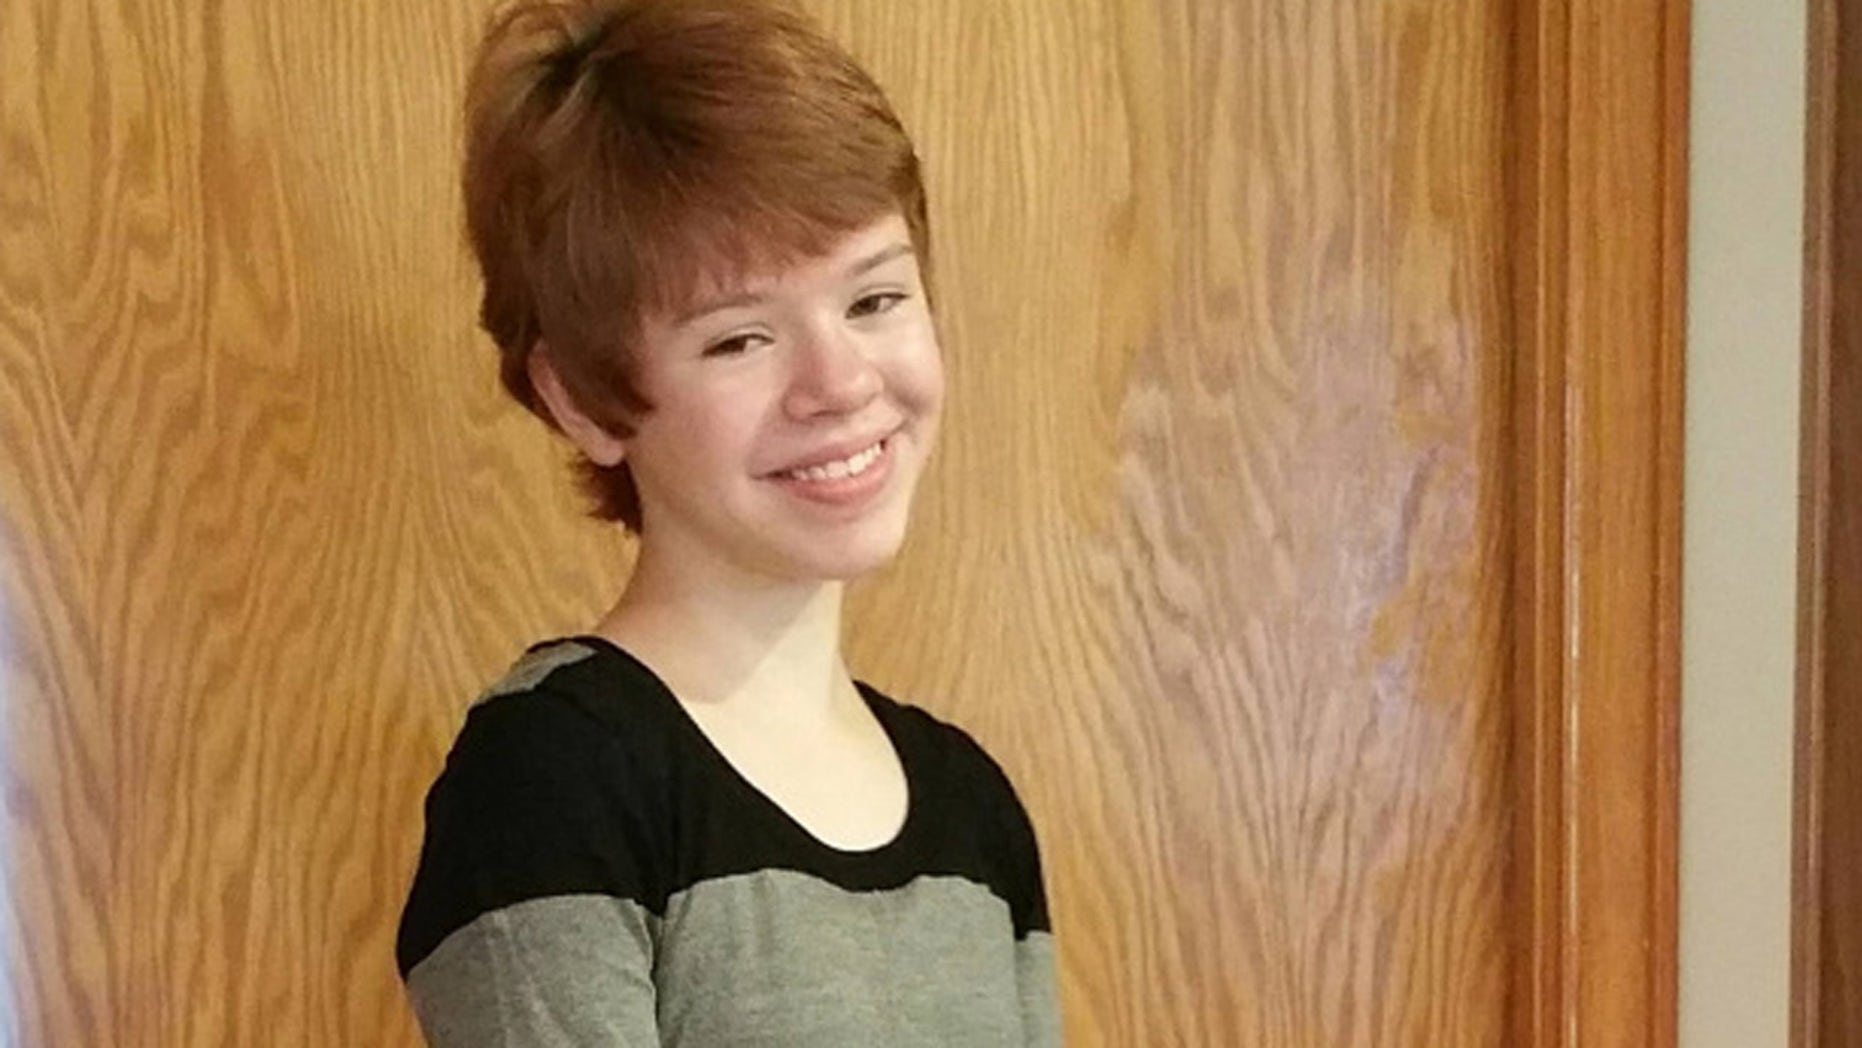 This undated image shows 14-year-old Abigail Kopf, who was critically injured Saturday during a shooting in Kalamazoo, Mich. (Courtesy Kopf Family)